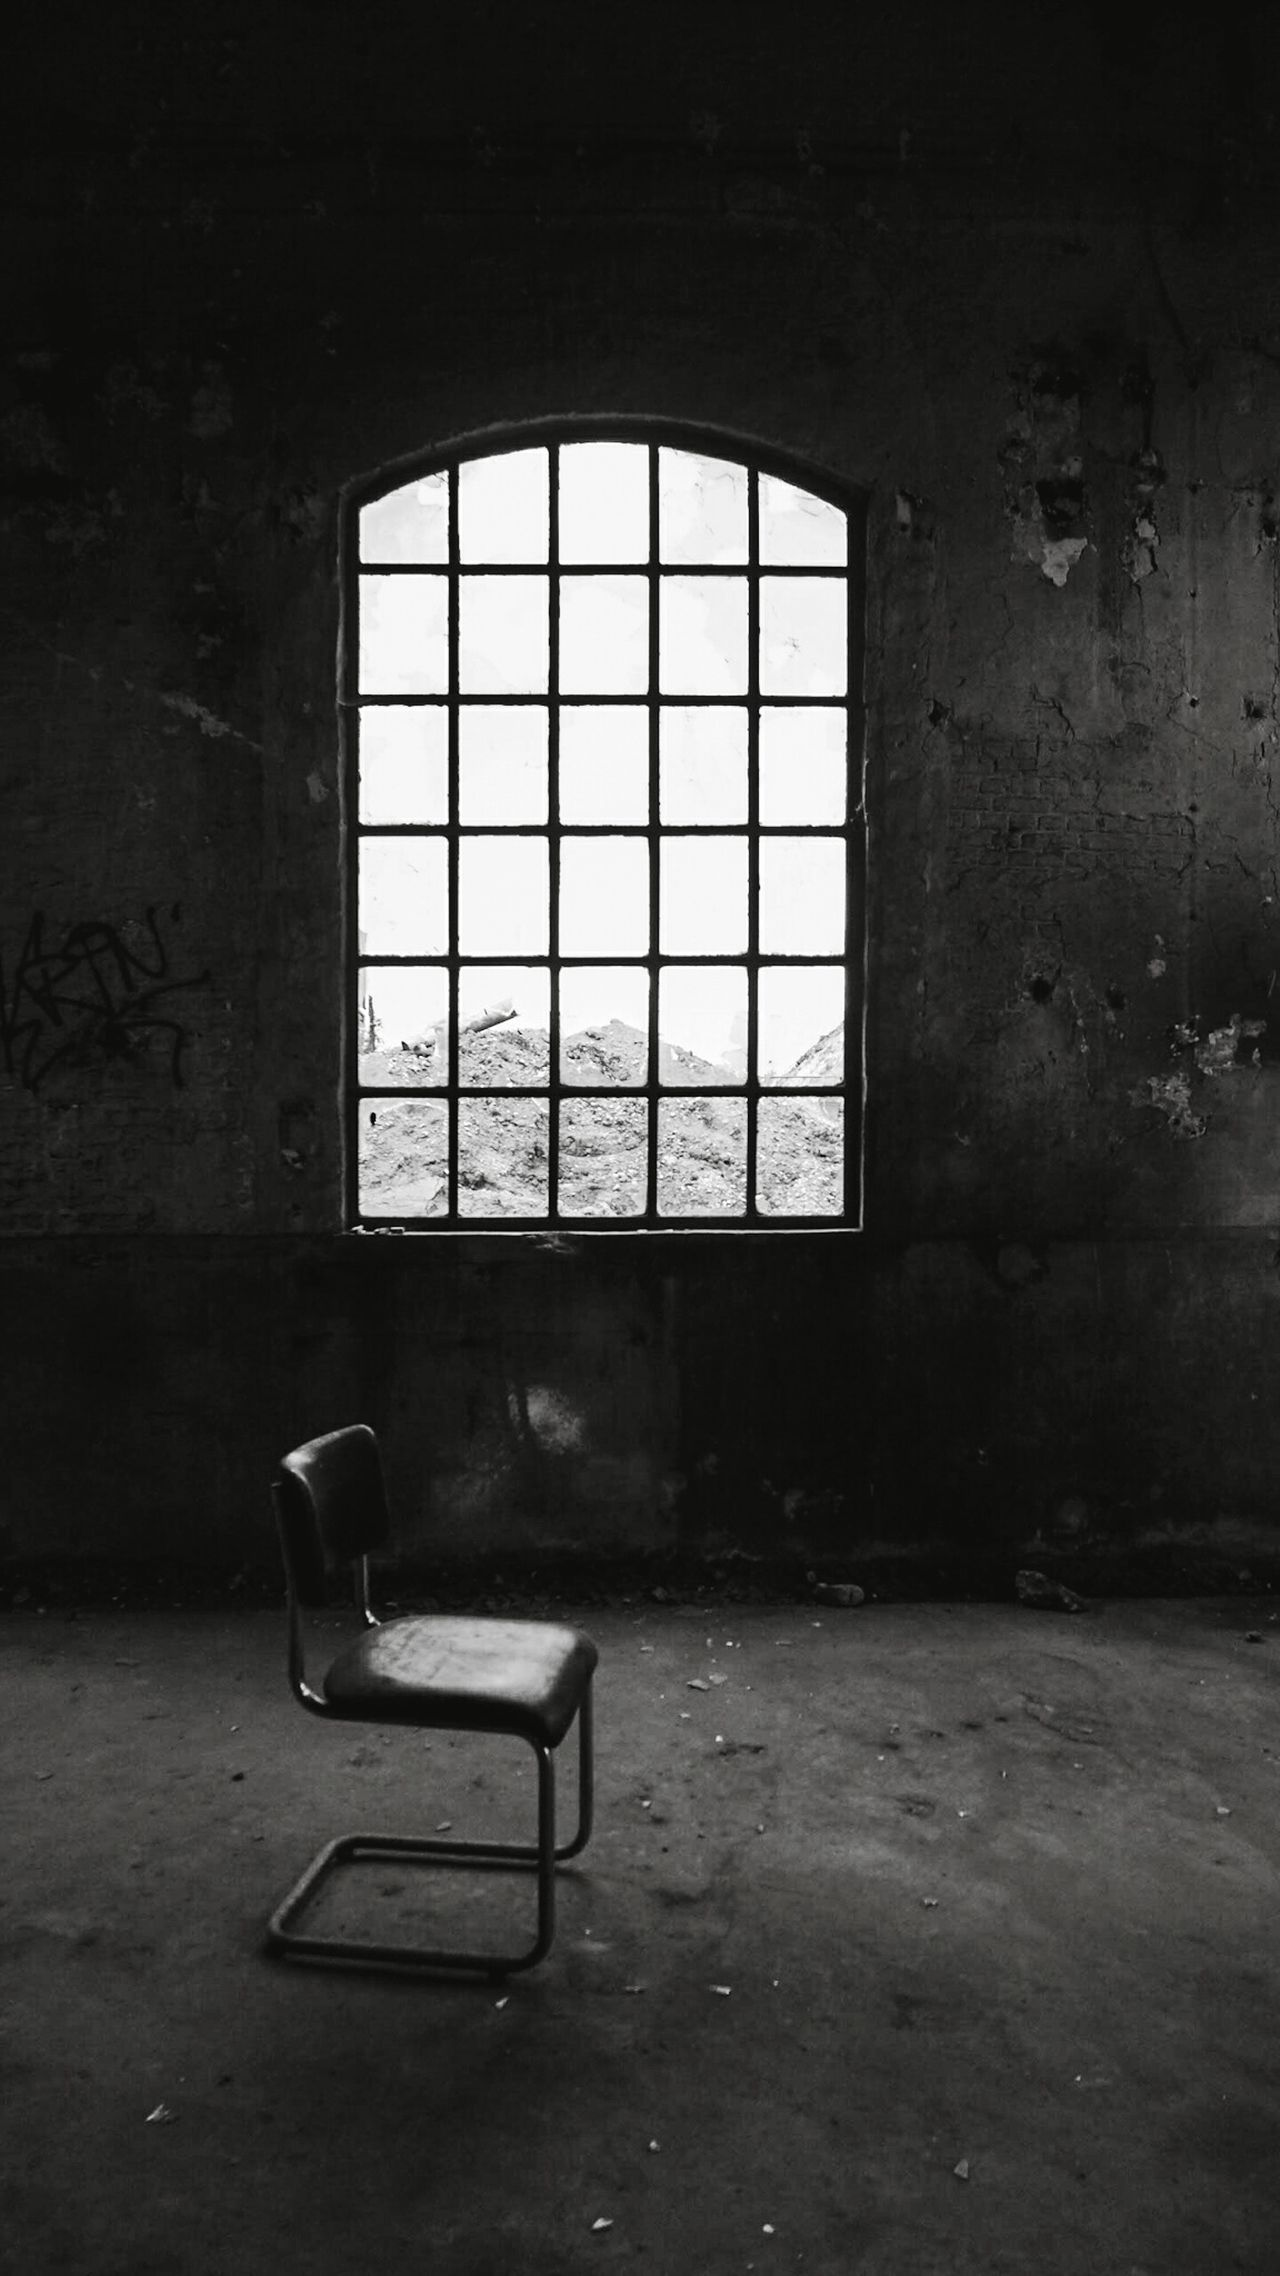 Window Indoors  Empty Abandoned Chair Day No People Architecture Old Urbexworld Creativity Urbexphotography Urbex Photograph Live For The Story Photography Traveling Fun Discovering Close-up Travel Destinations Empty Lonely Alone Blackandwhite